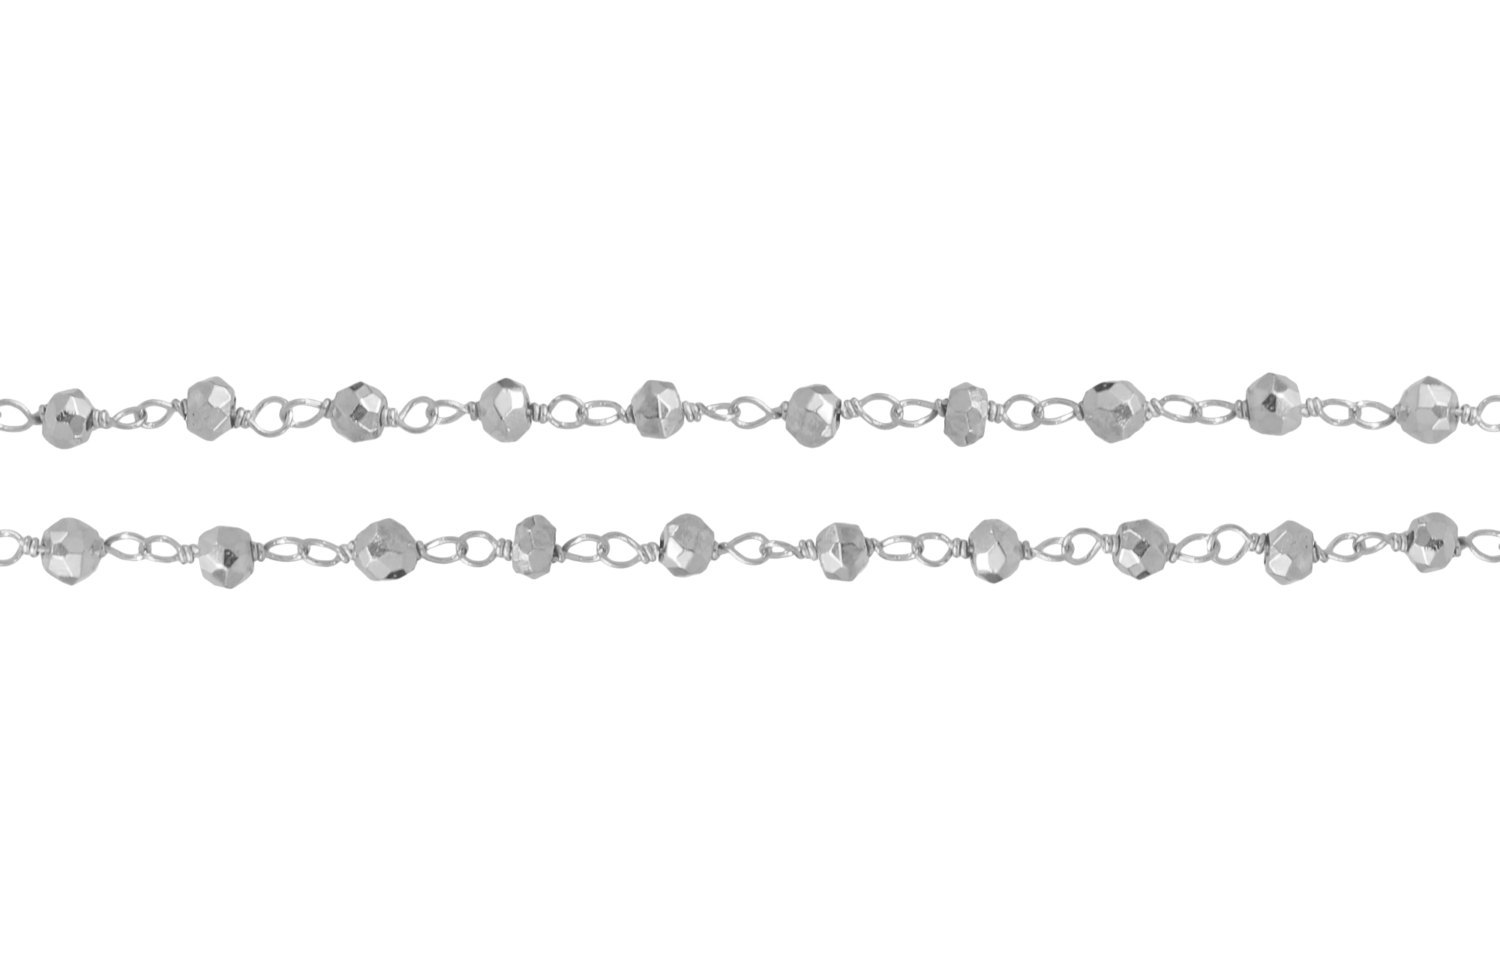 Primary image for Chain, Faceted Pyrite Rosary Chain, Sterling Silver, 3mm, Pk Of 10ft (6845-10)/1